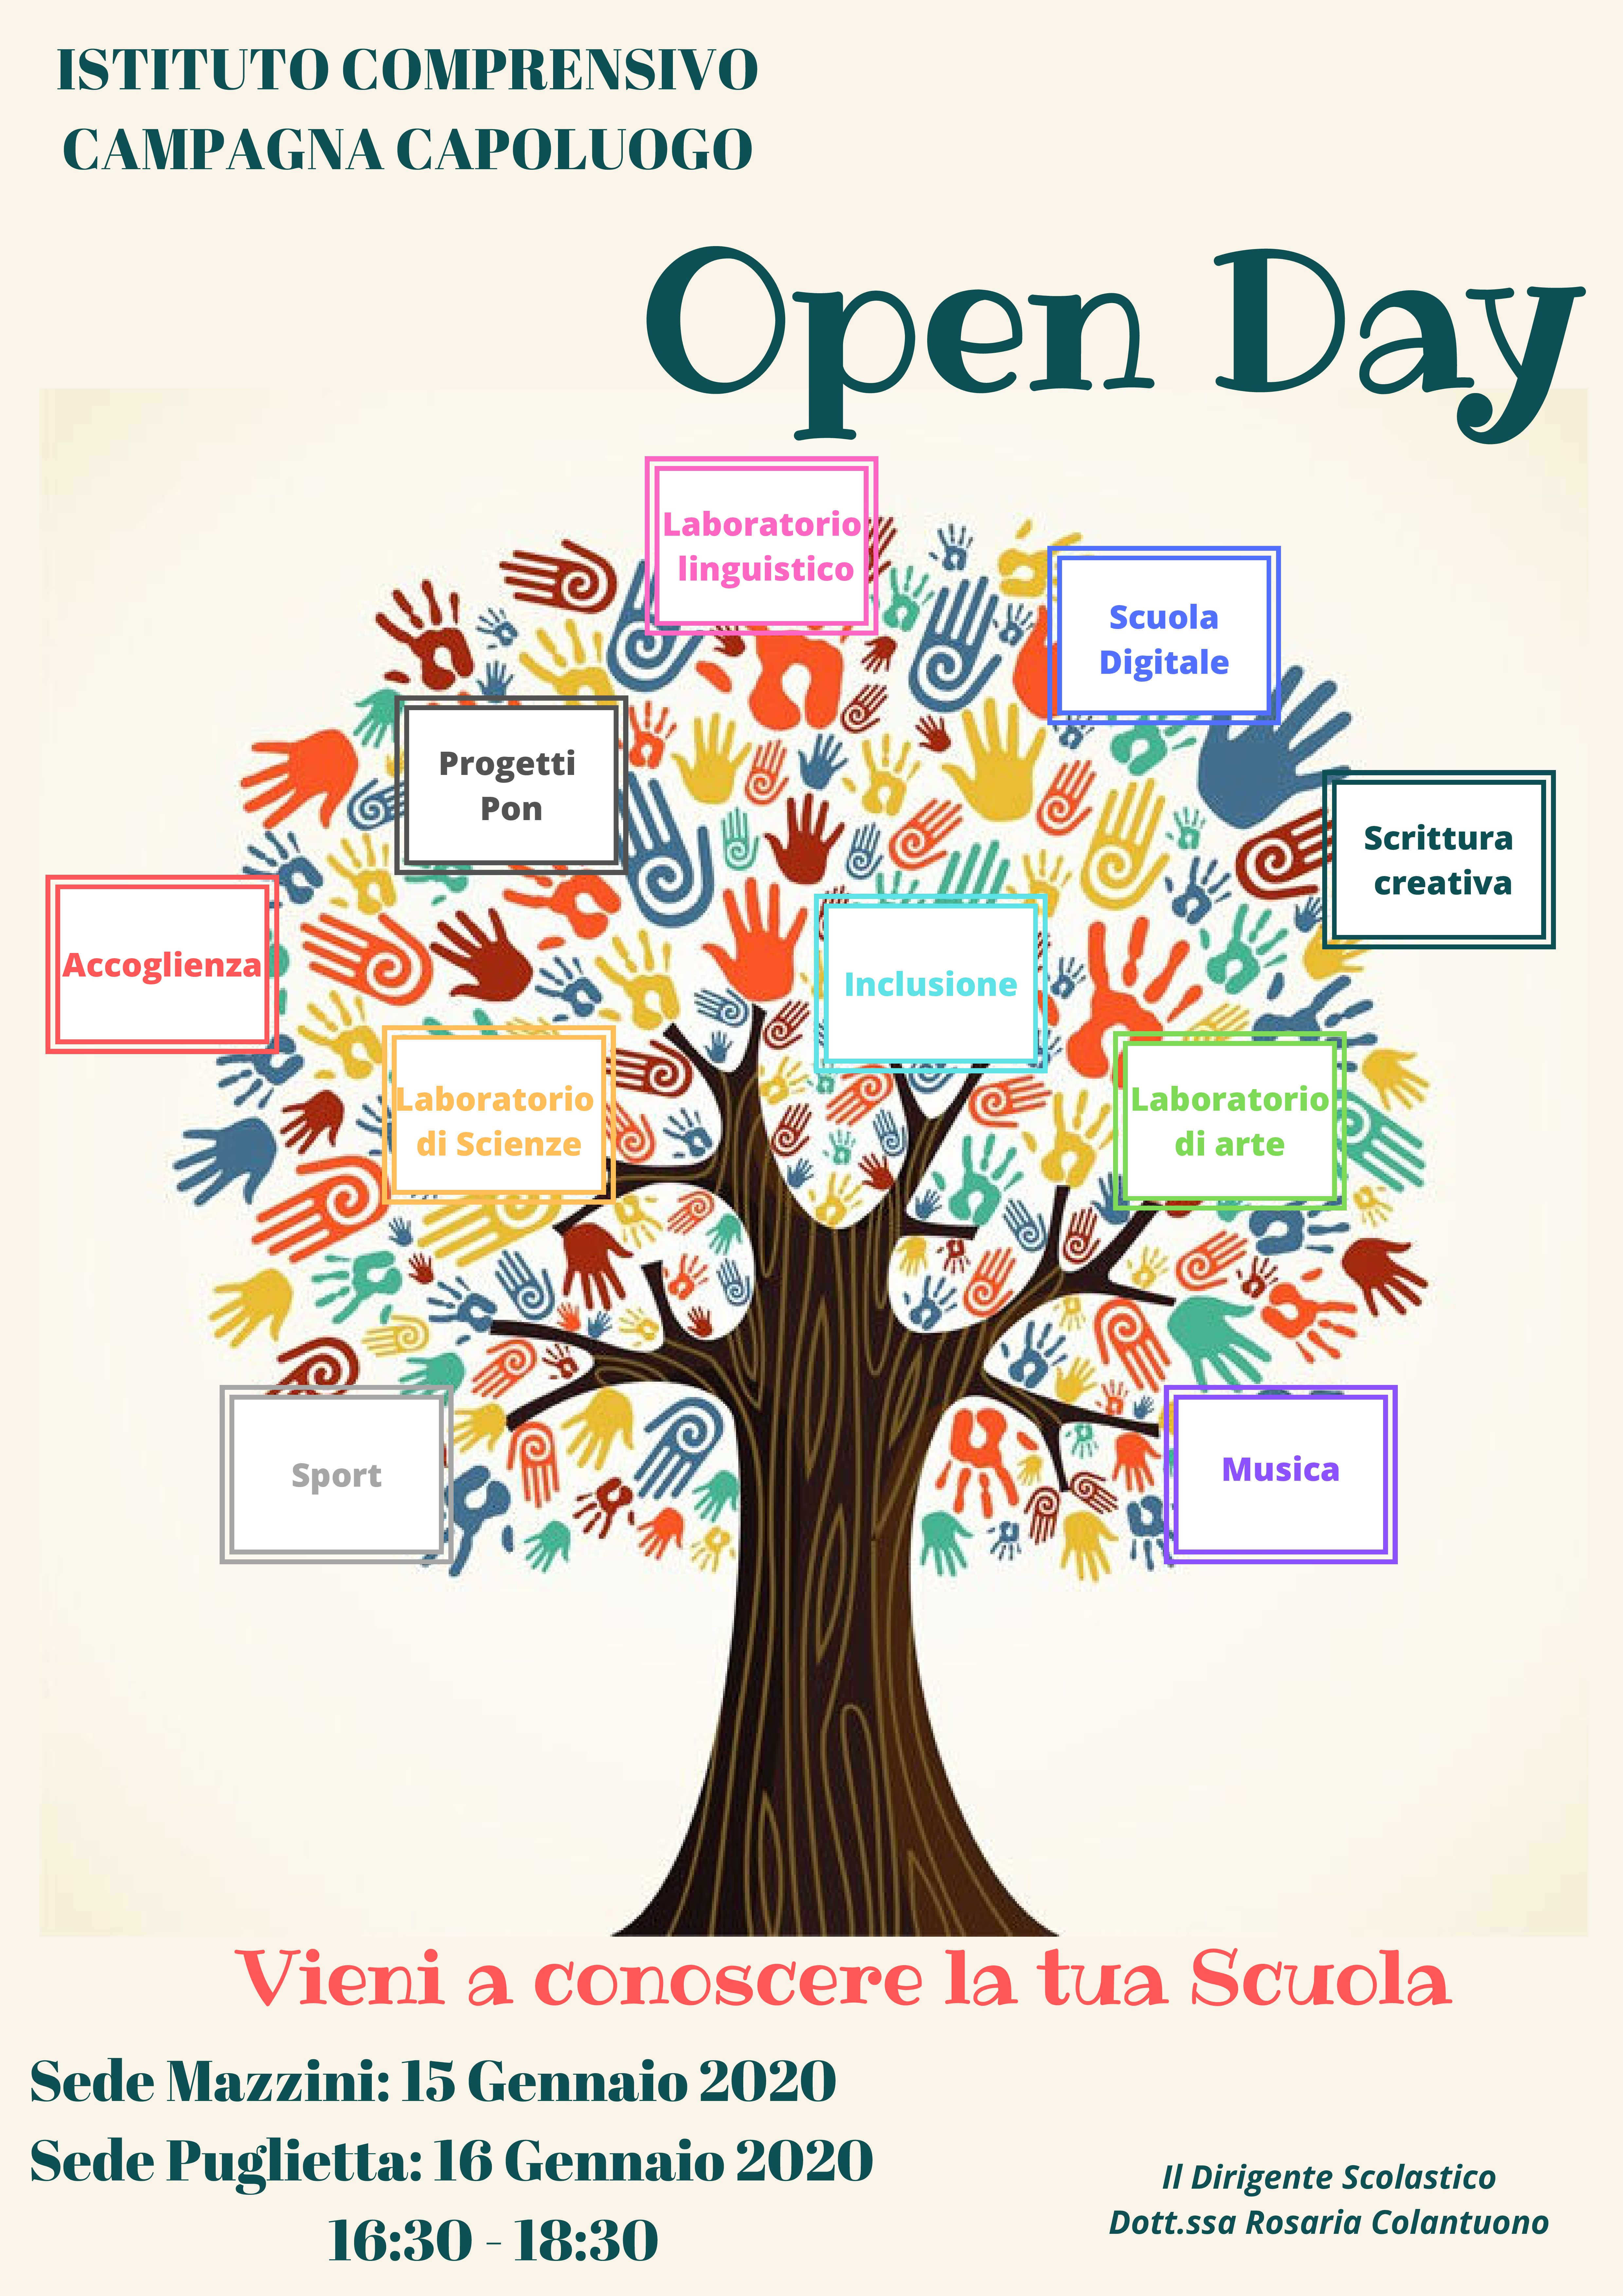 2open day